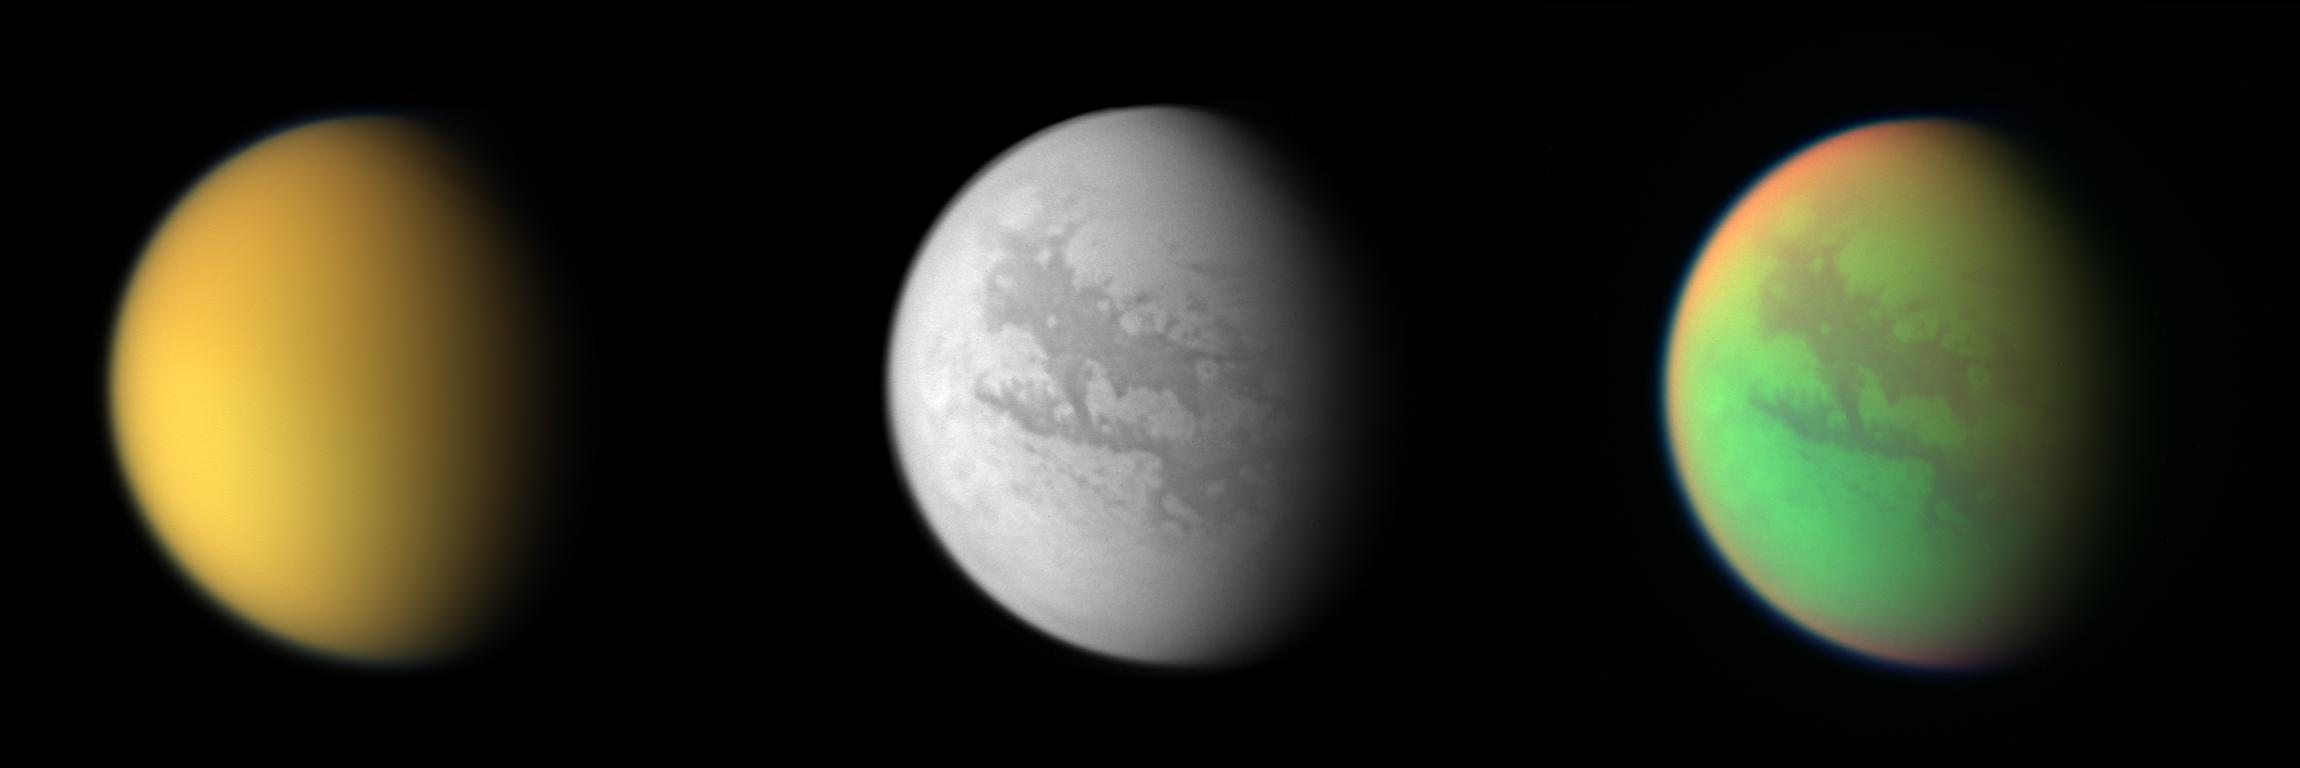 These three views of Titan from the Cassini spacecraft illustrate how different the same place can look in different wavelengths of light.